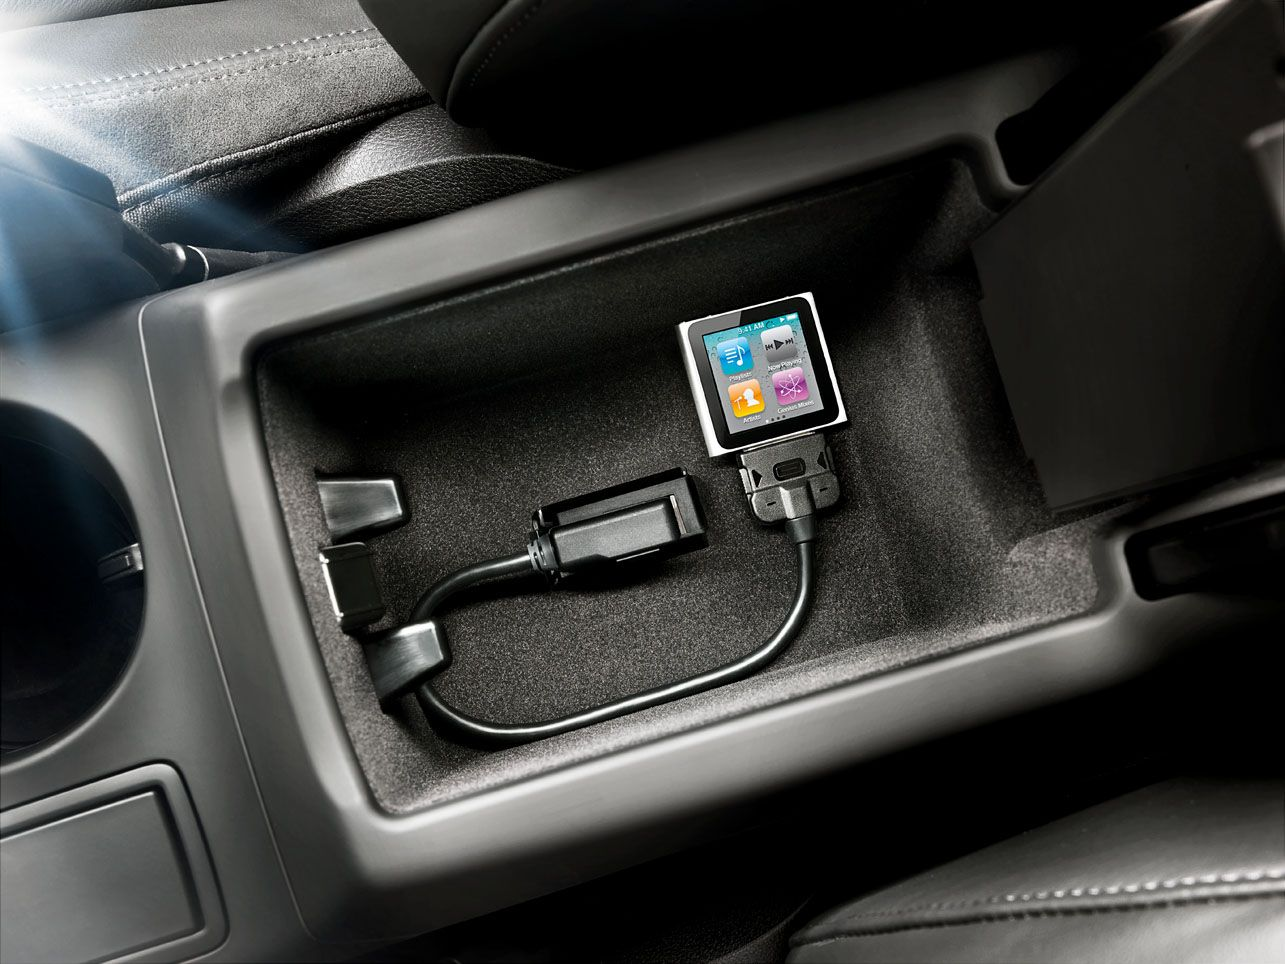 Pin by M25 AUDI on Our Favourite Audi Accessories | Pinterest ...